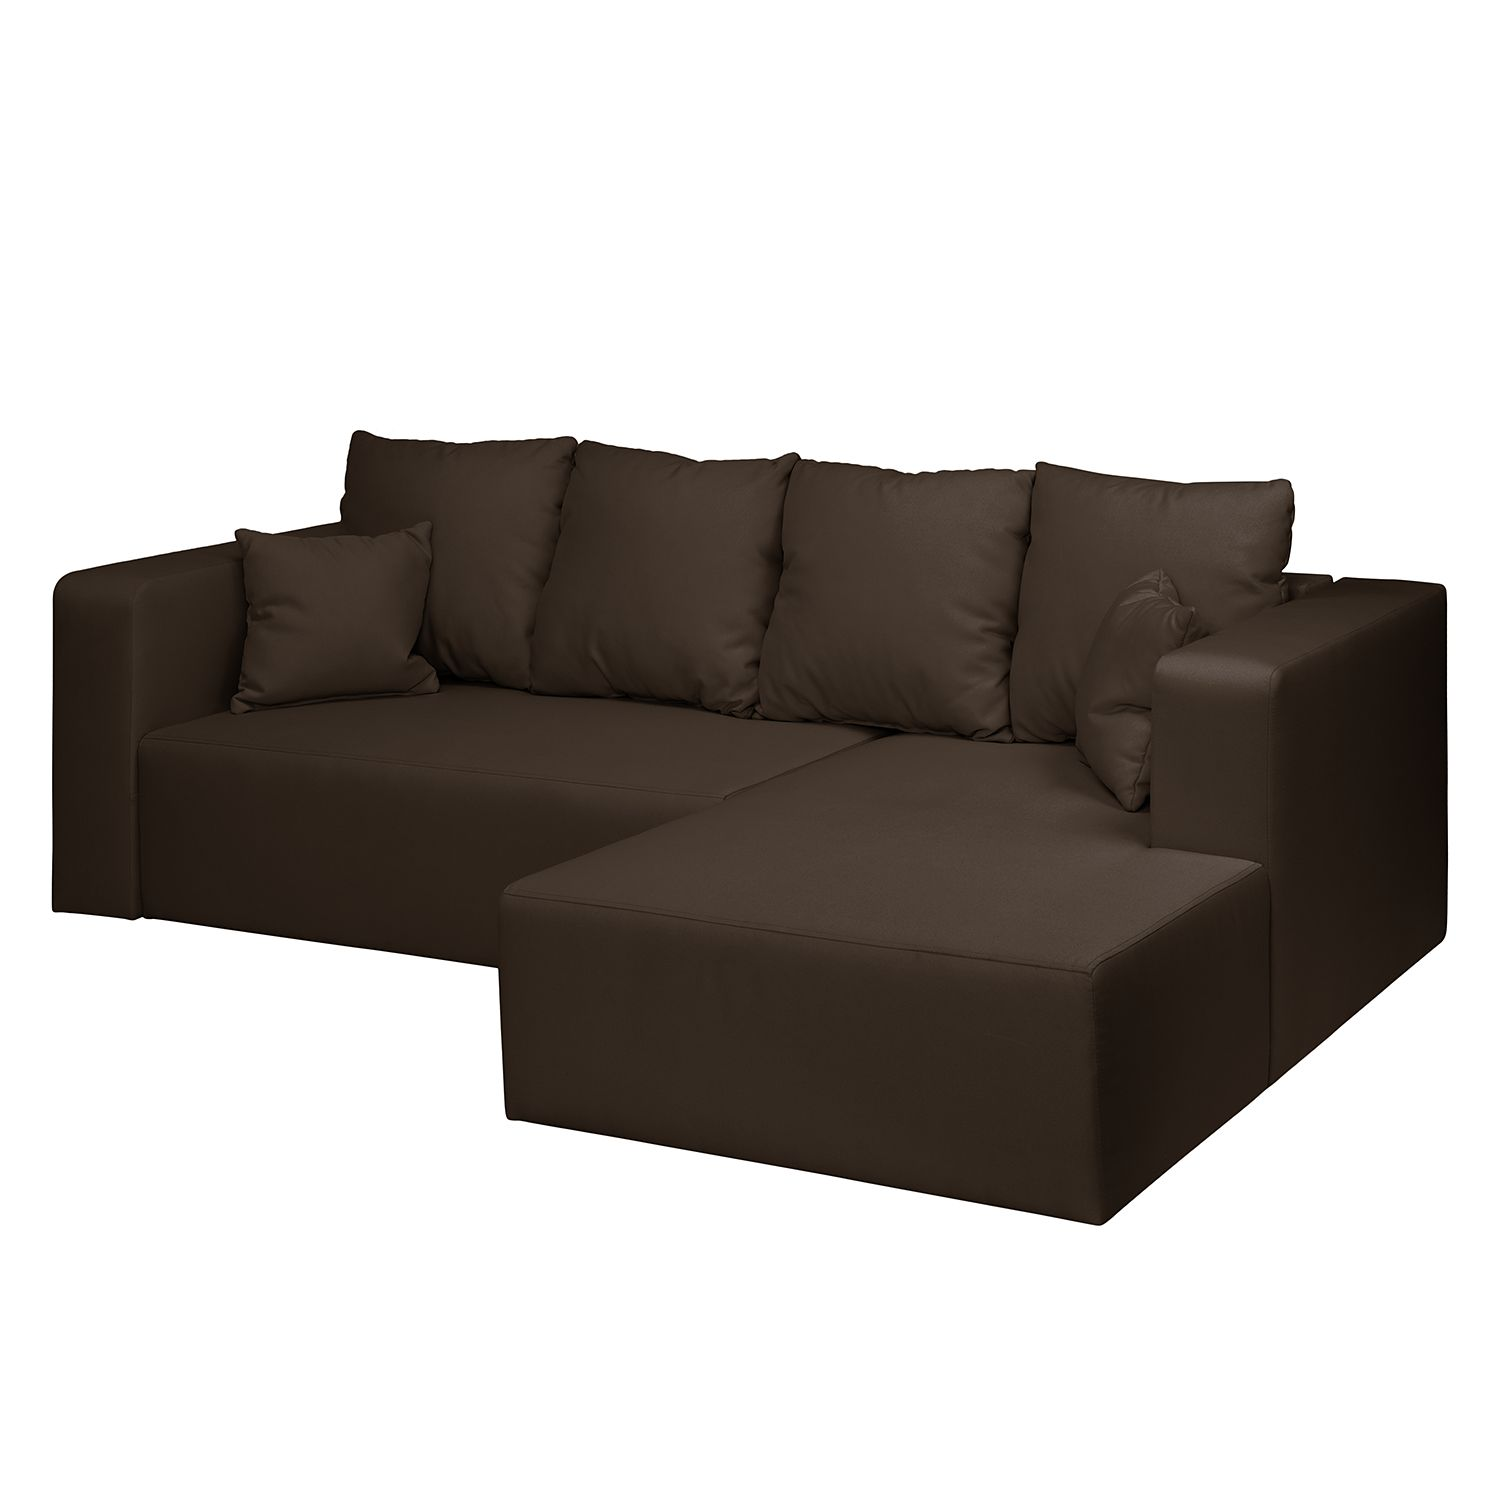 ecksofa freer mit schlaffunktion webstoff longchair ottomane davorstehend rechts espresso. Black Bedroom Furniture Sets. Home Design Ideas